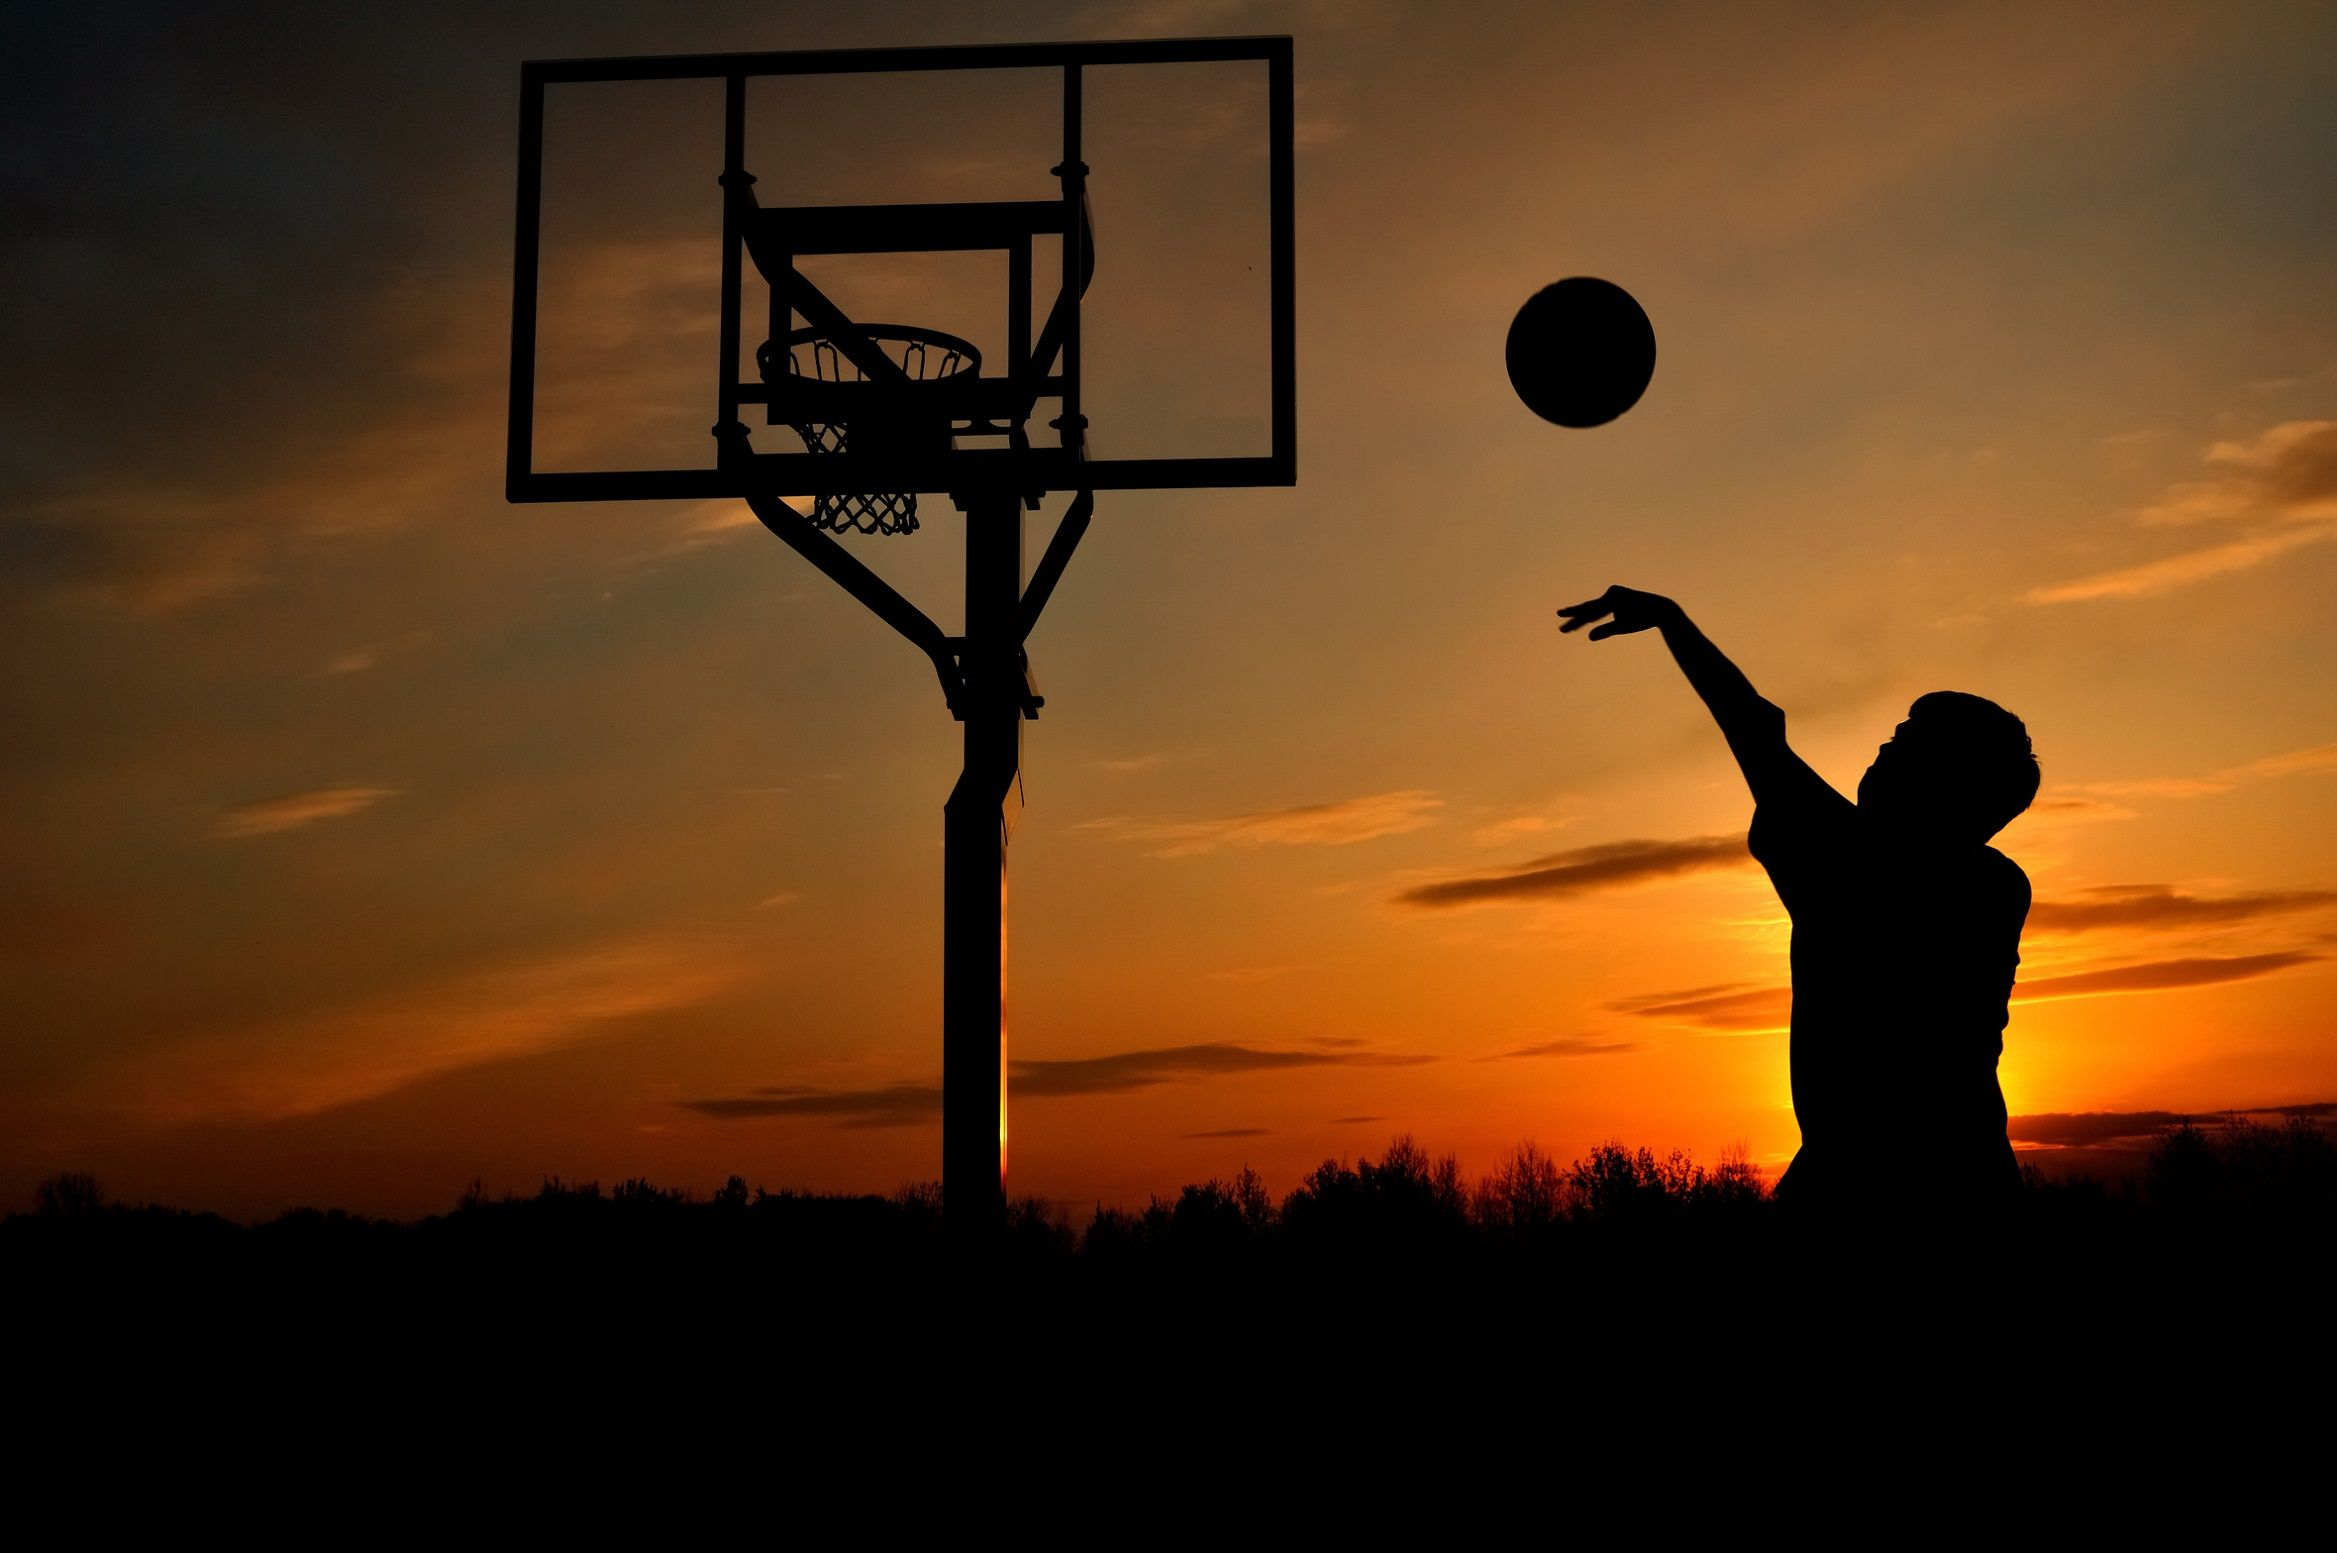 Children Basketball Wallpaper: Backgrounds - Wallpaper Abyss